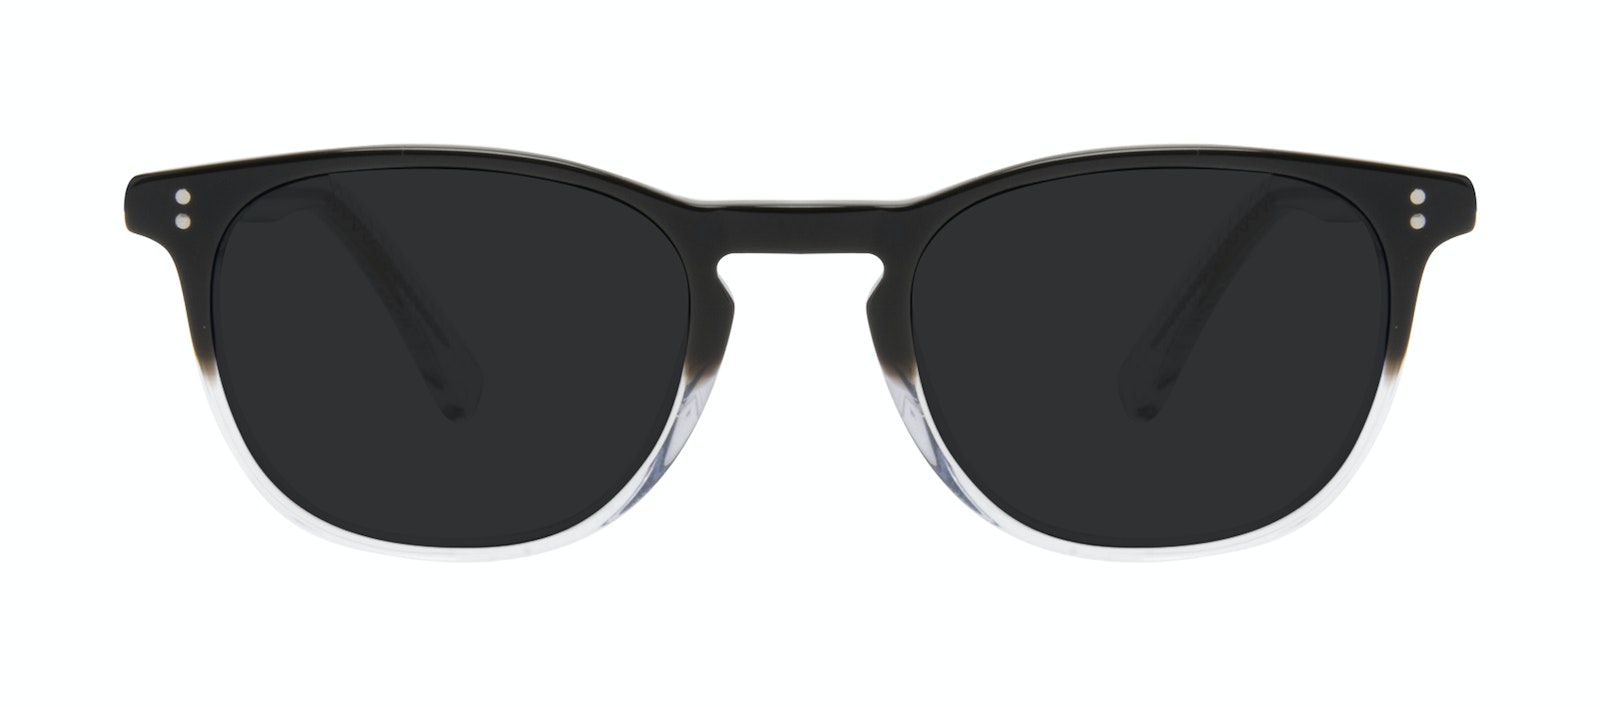 Affordable Fashion Glasses Round Sunglasses Men Trooper M Onyx Clear Front